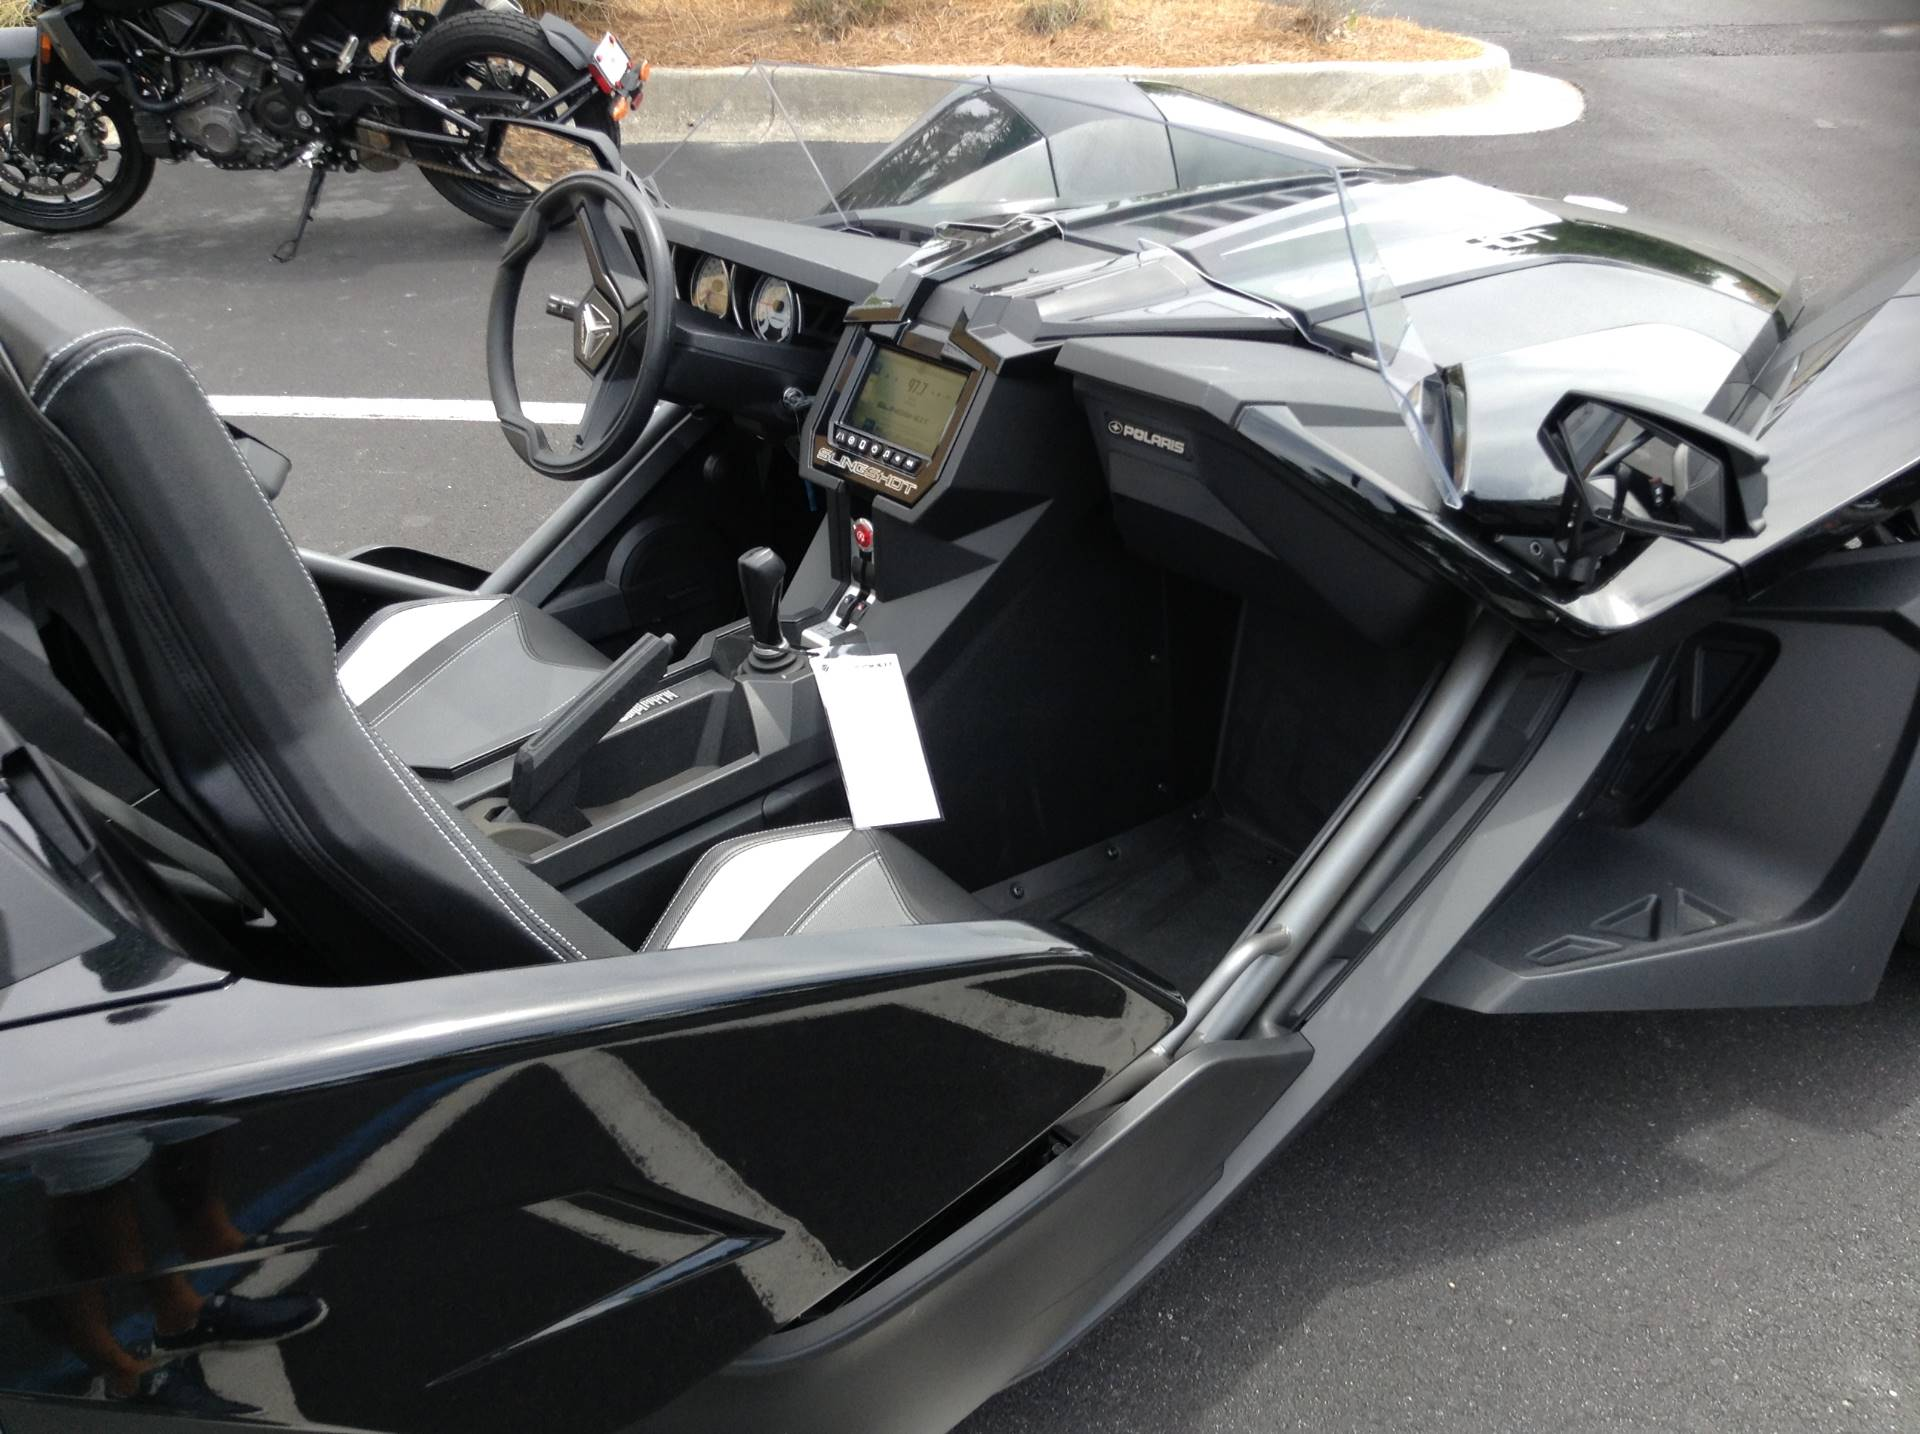 2019 Polaris SLINGSHOT SL in Panama City Beach, Florida - Photo 7